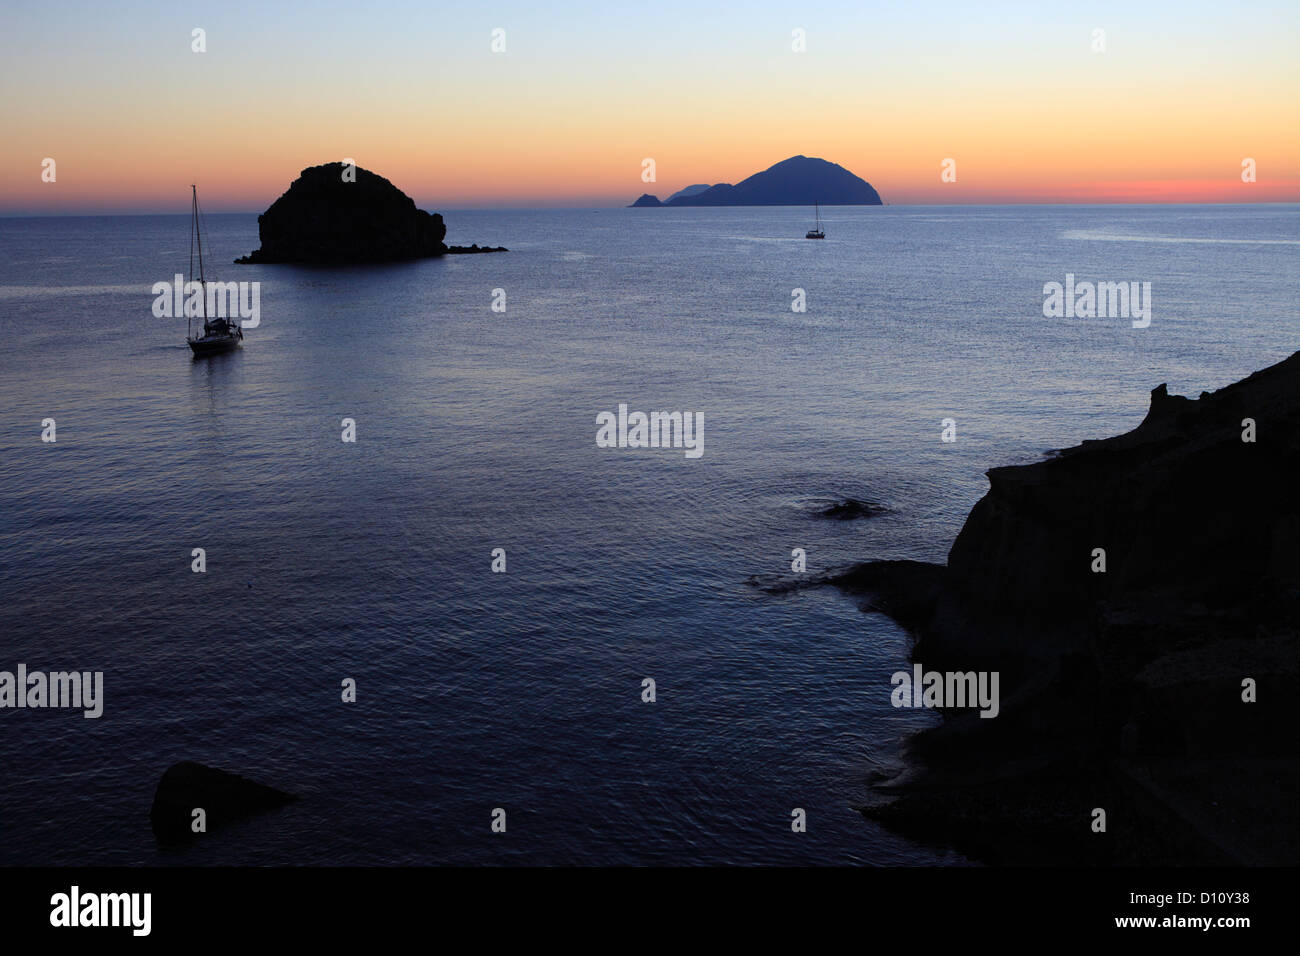 Faraglione rocks and Filicudi island seen from Pollara, Salina, Aeolian islands, Sicily, Italy Stock Photo